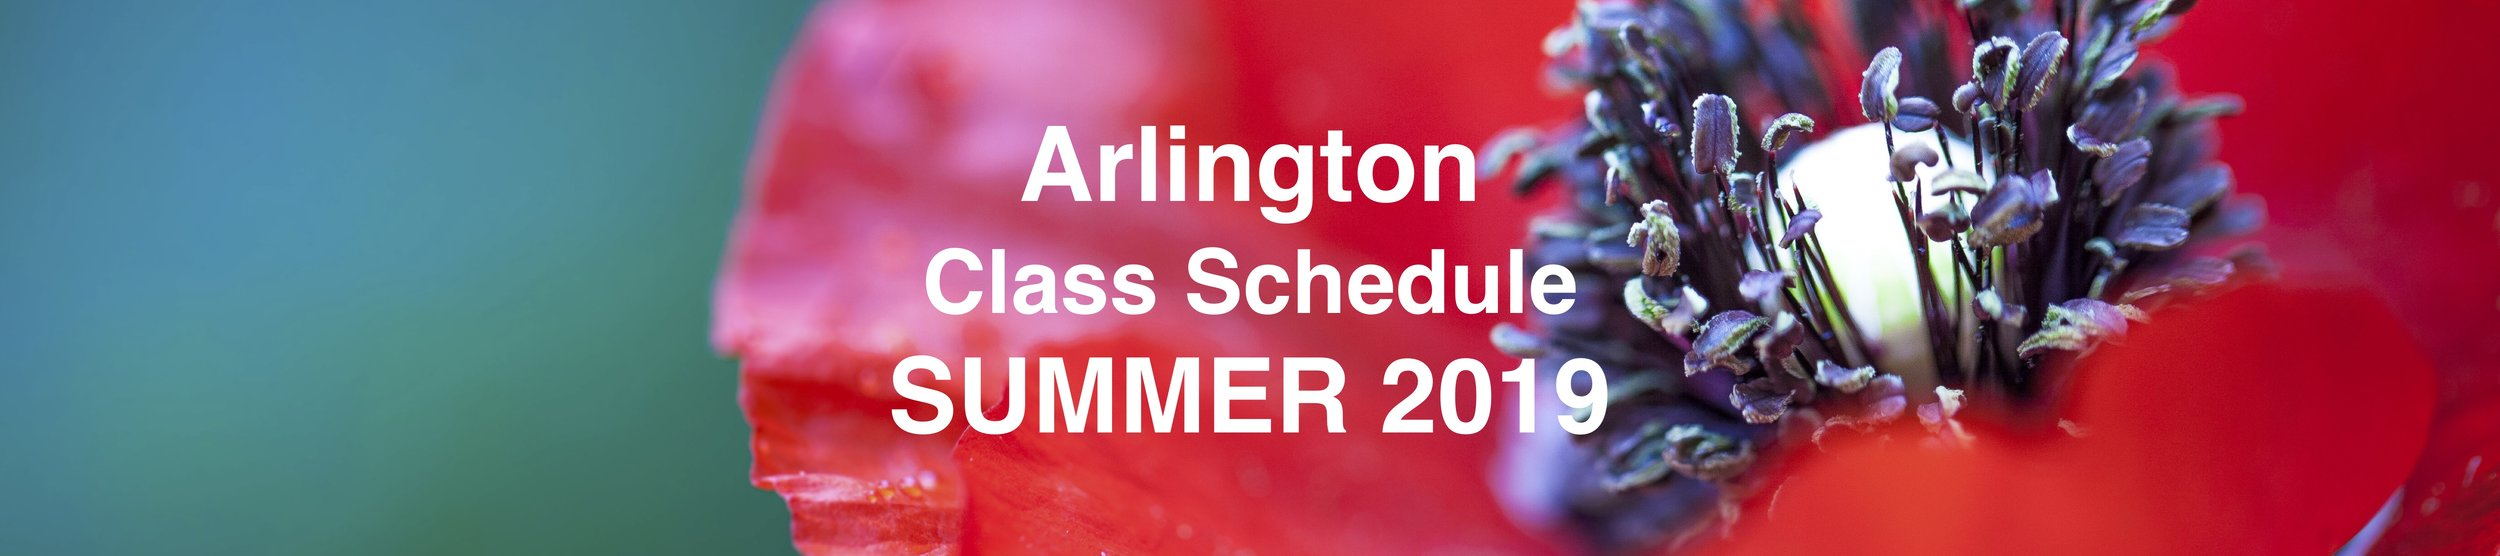 Sched Page Image Doc ARL Summer.jpg